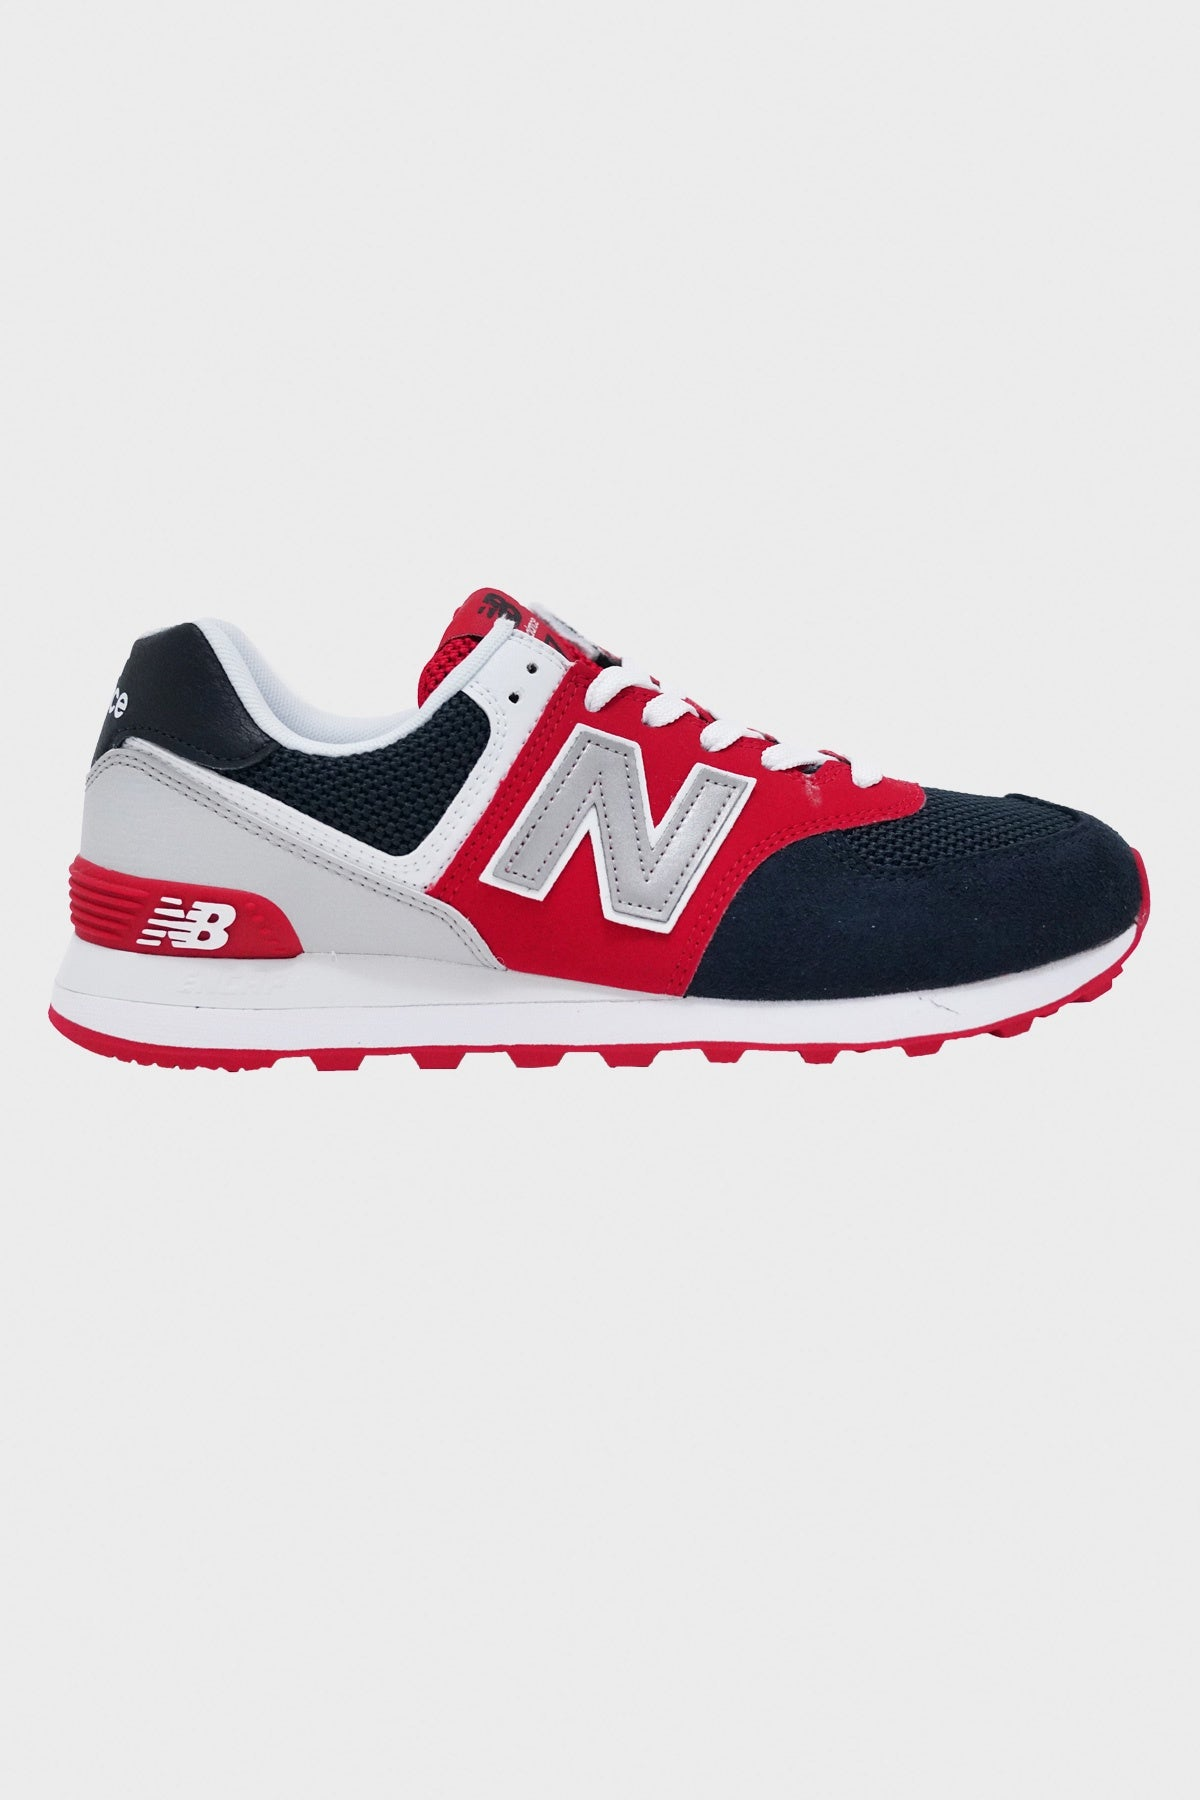 New Balance - 574 Essentials - Navy/Red/White - Canoe Club